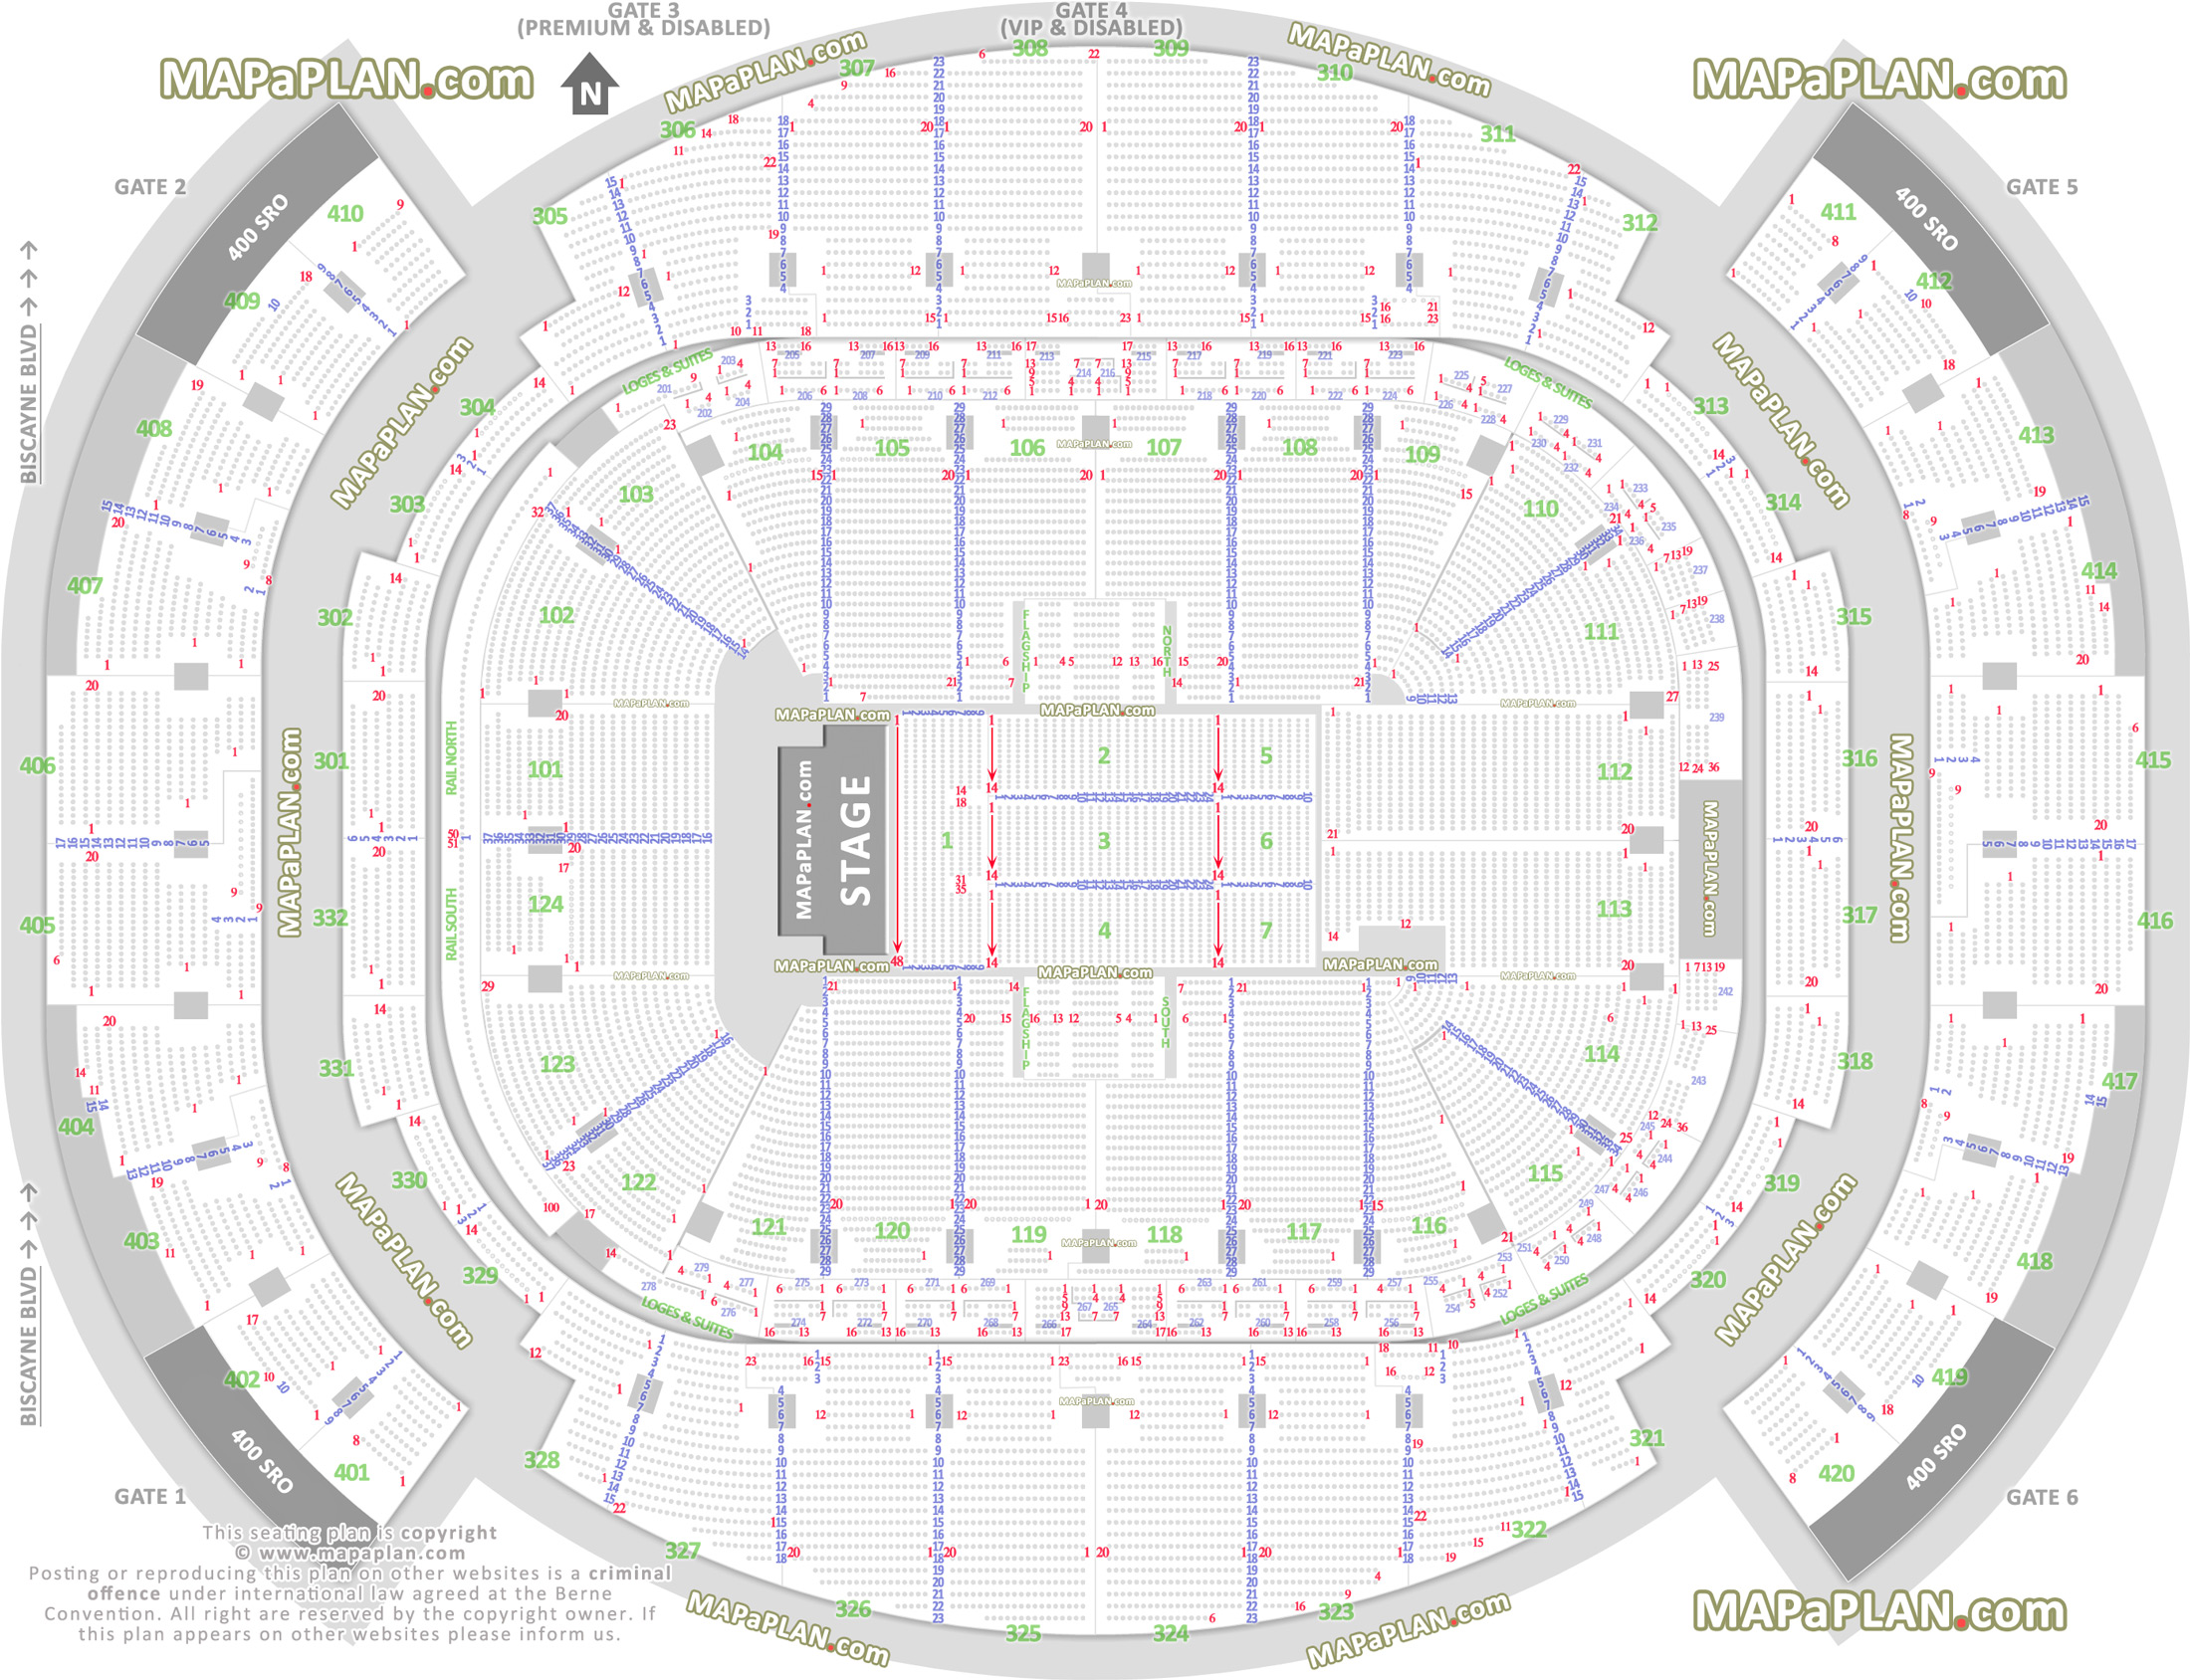 american airlines arena seat & row numbers detailed seating